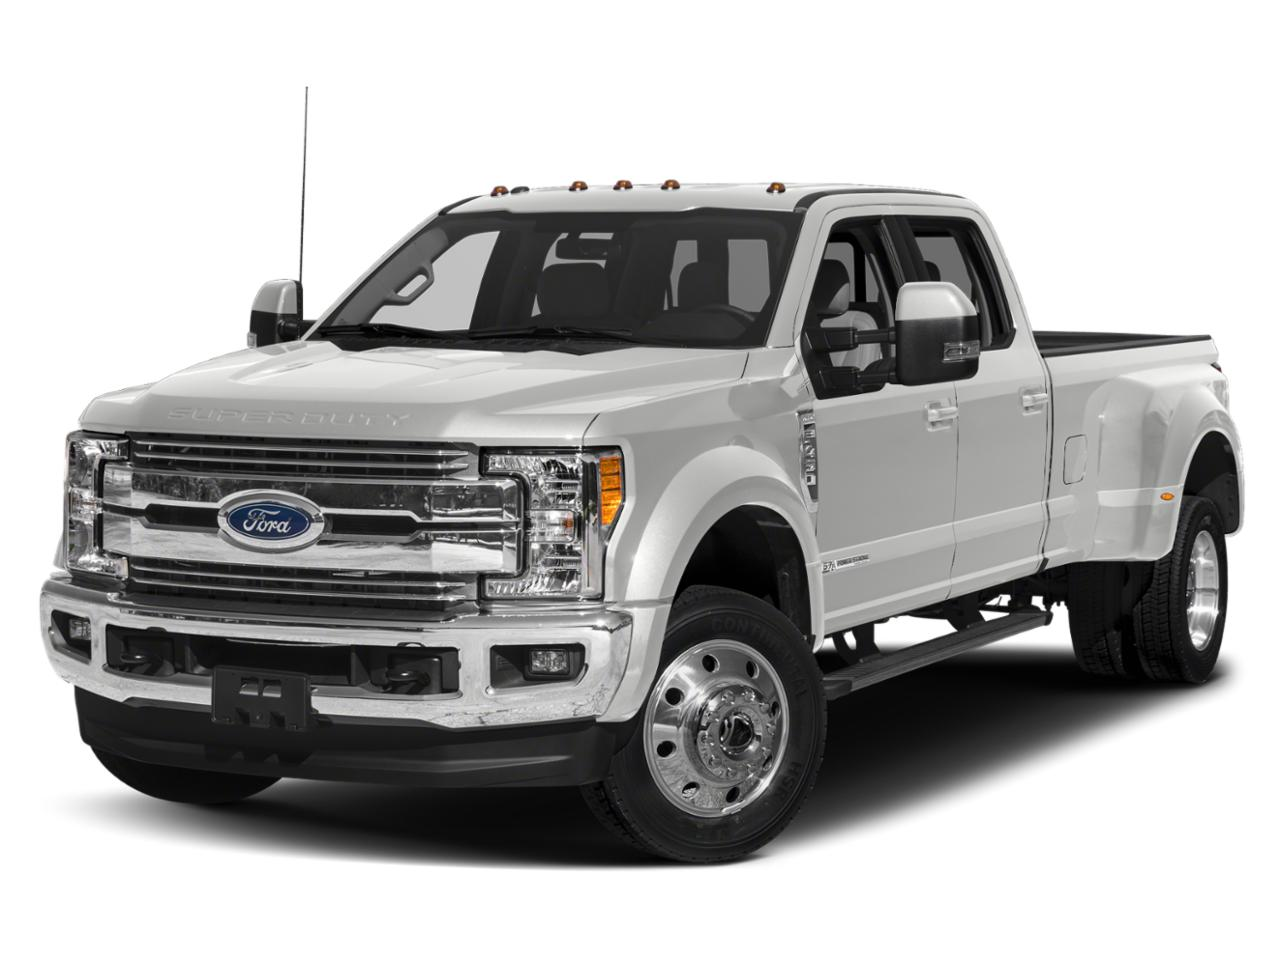 2019 Ford Super Duty F-450 DRW Vehicle Photo in Denver, CO 80123